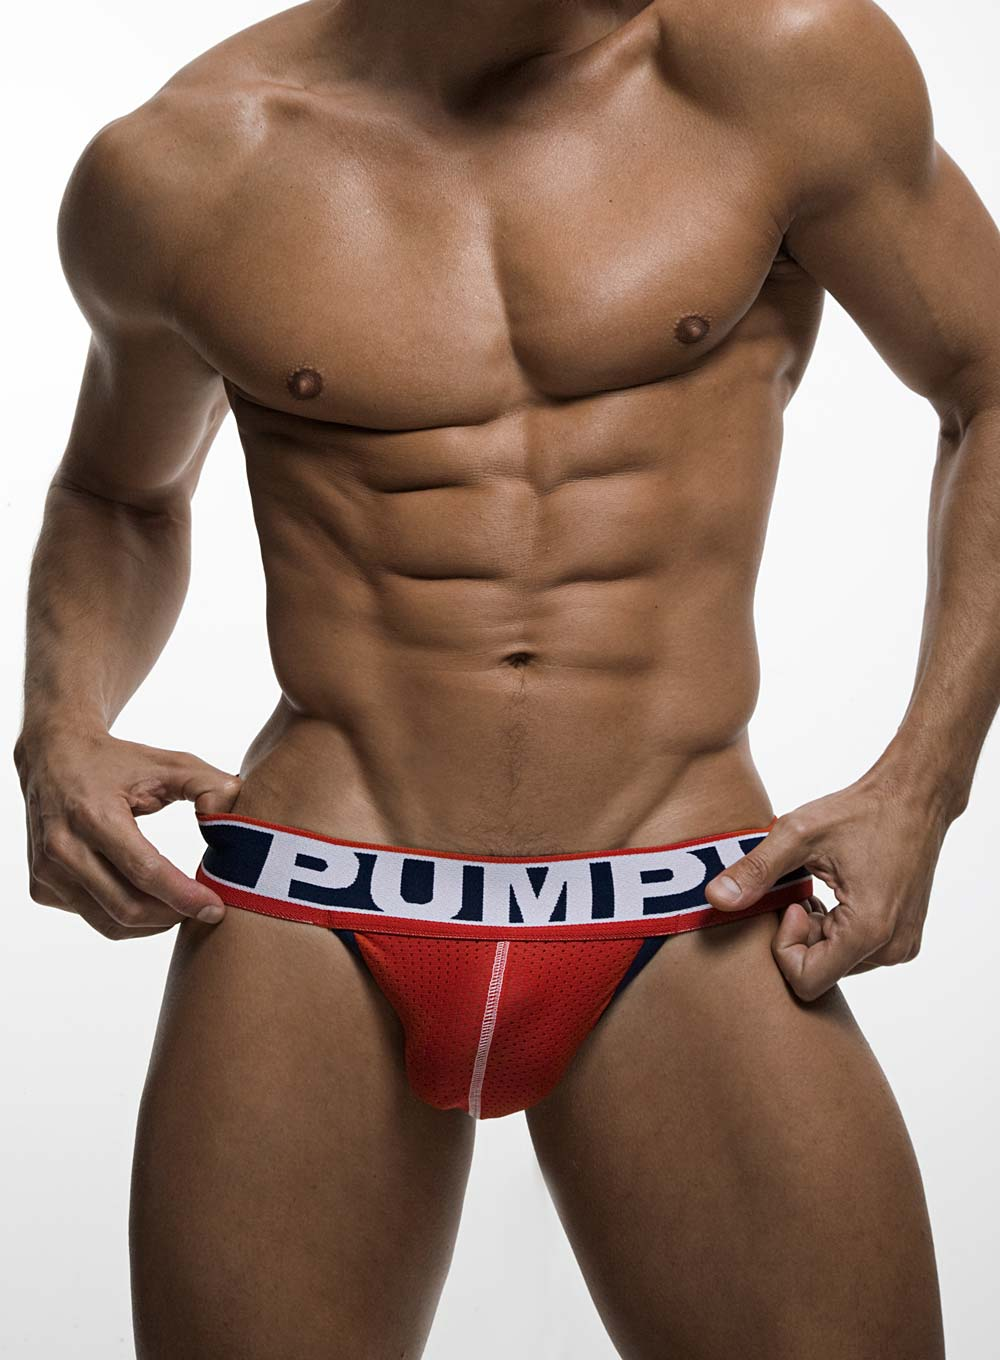 PUMP! FEVER  Red JockStrap